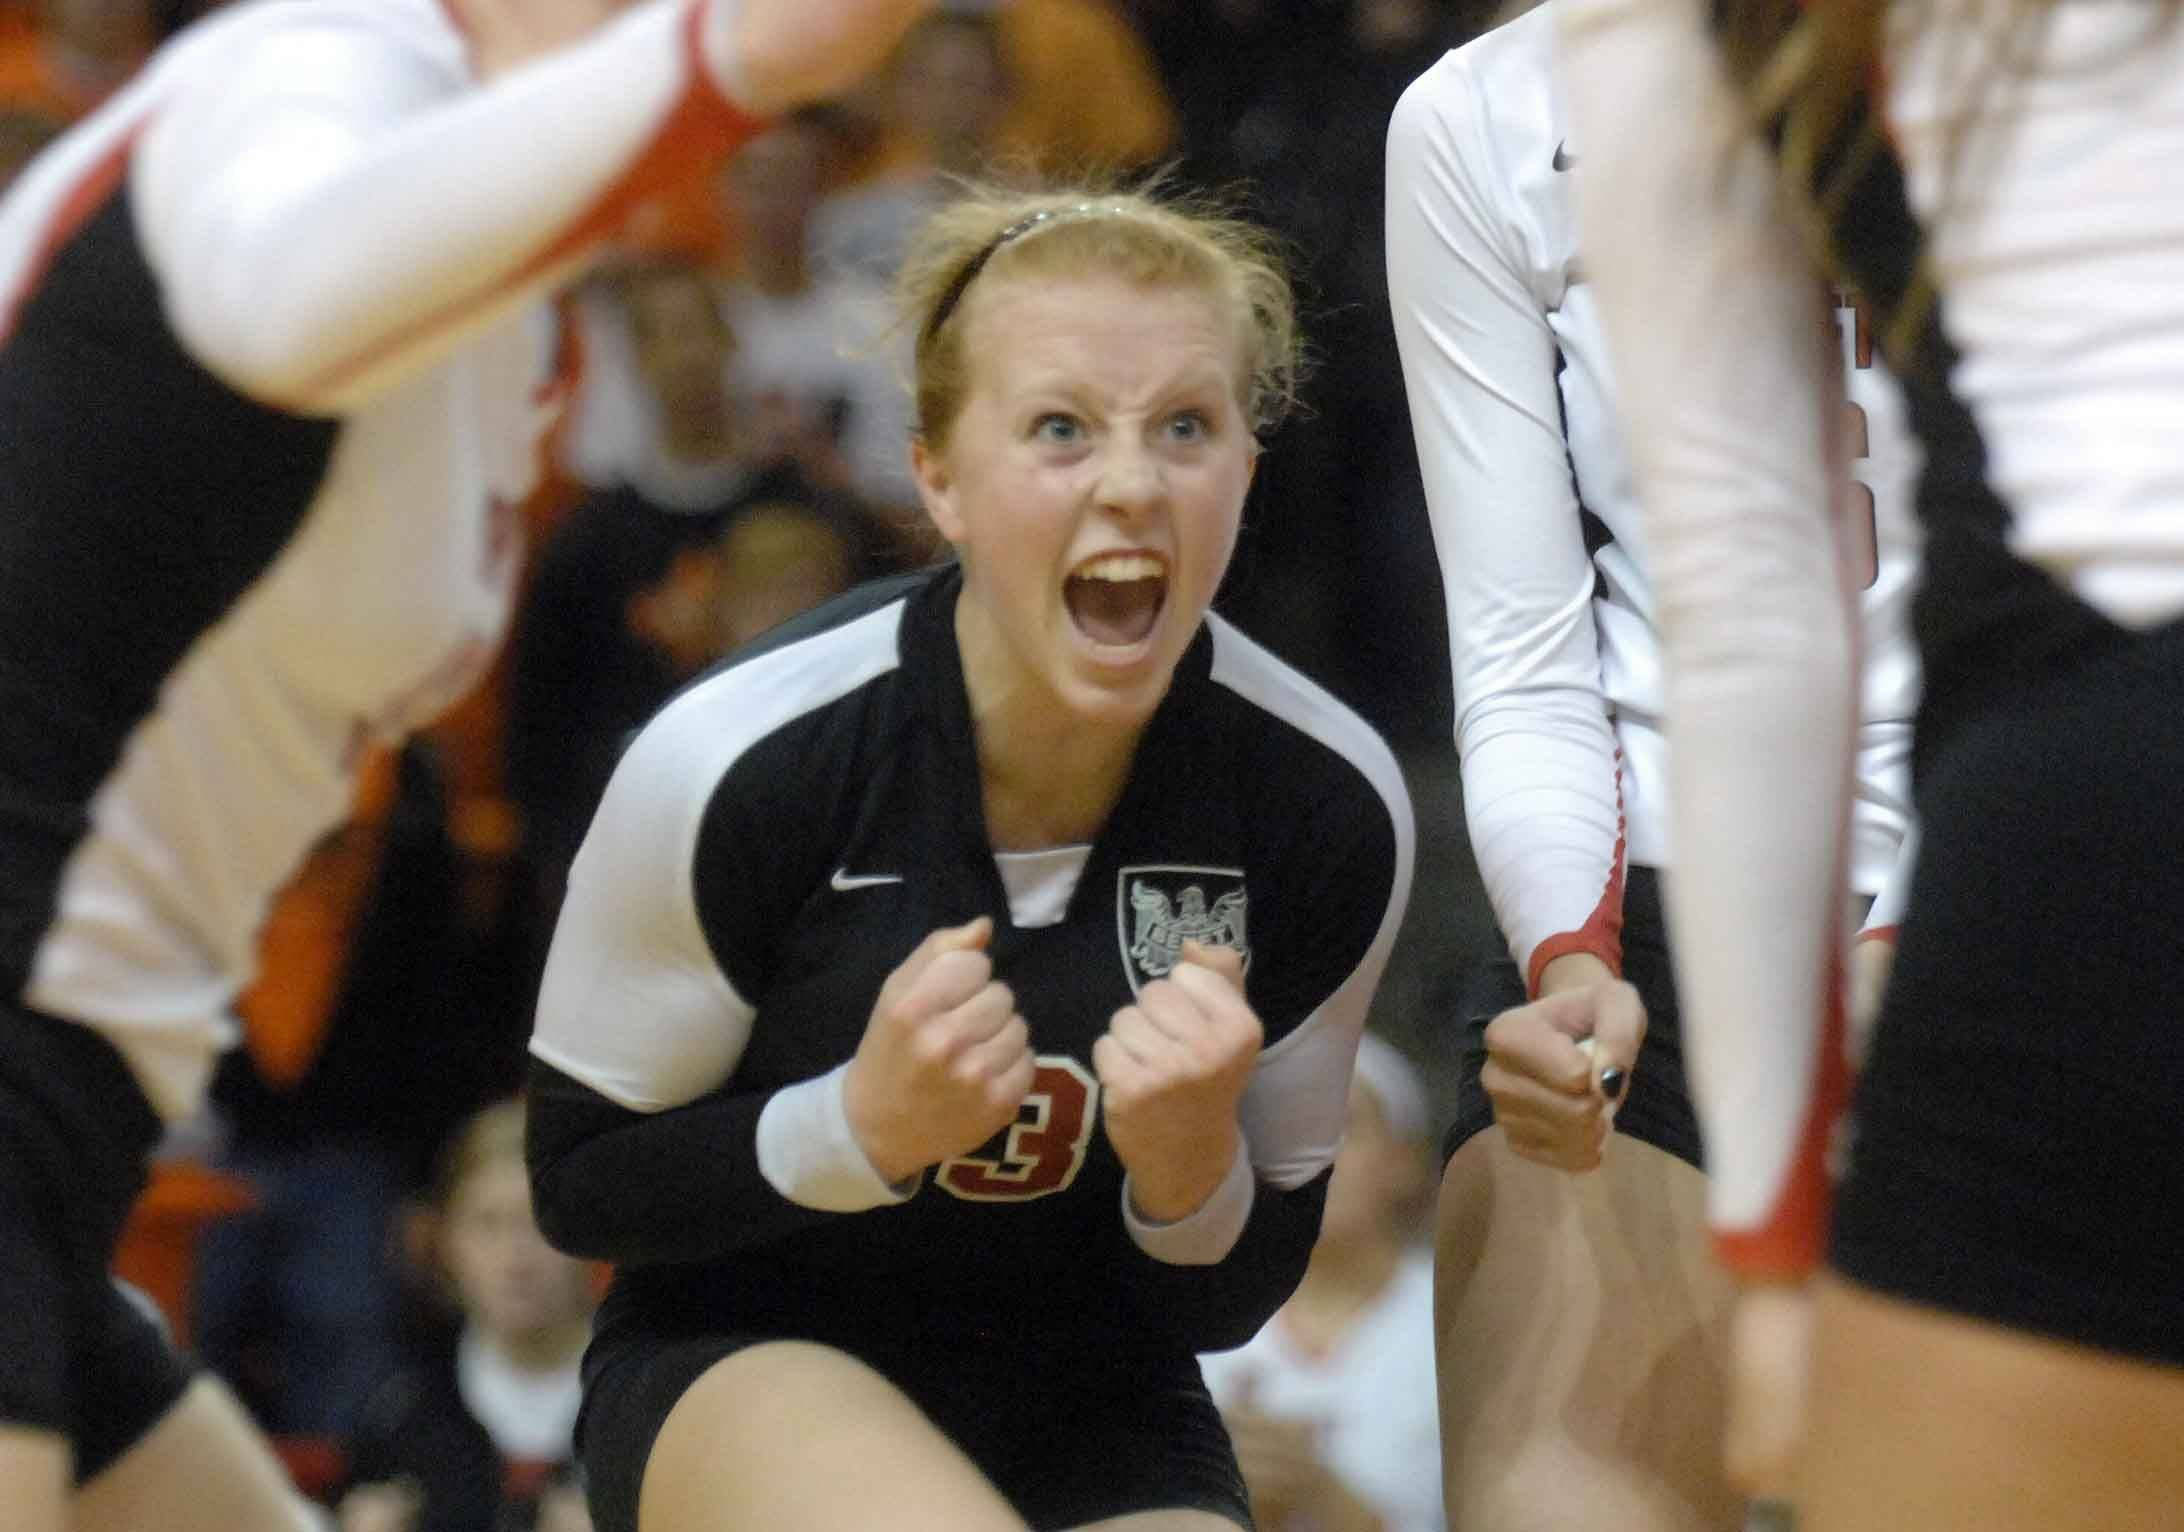 Images: St. Charles East vs. Benet, 4A volleyball semifinals